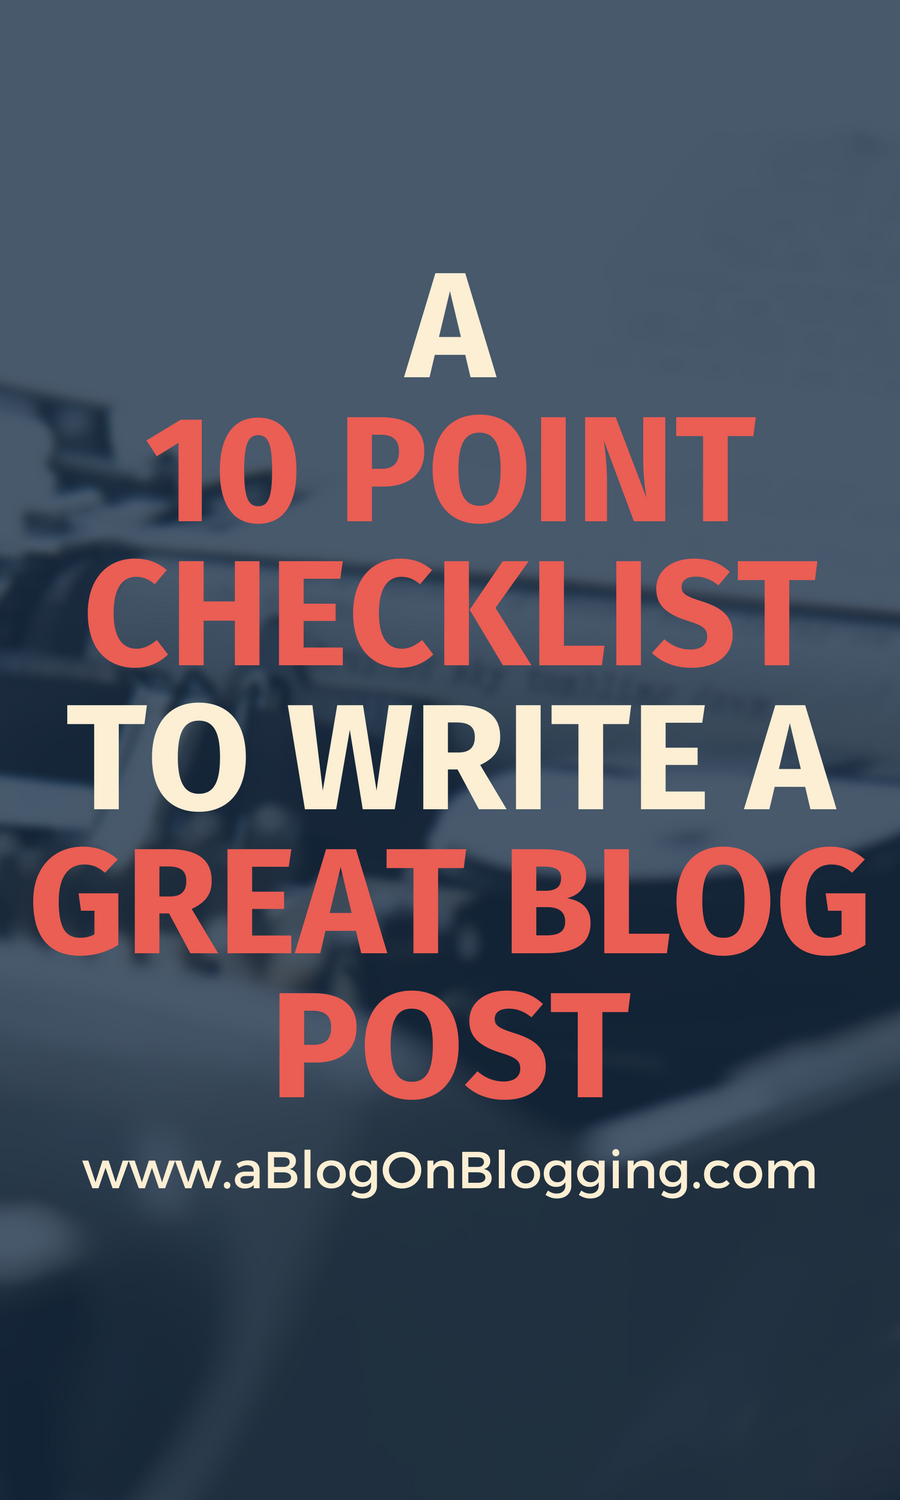 10 Point Checklist To Write A Great Blog Post